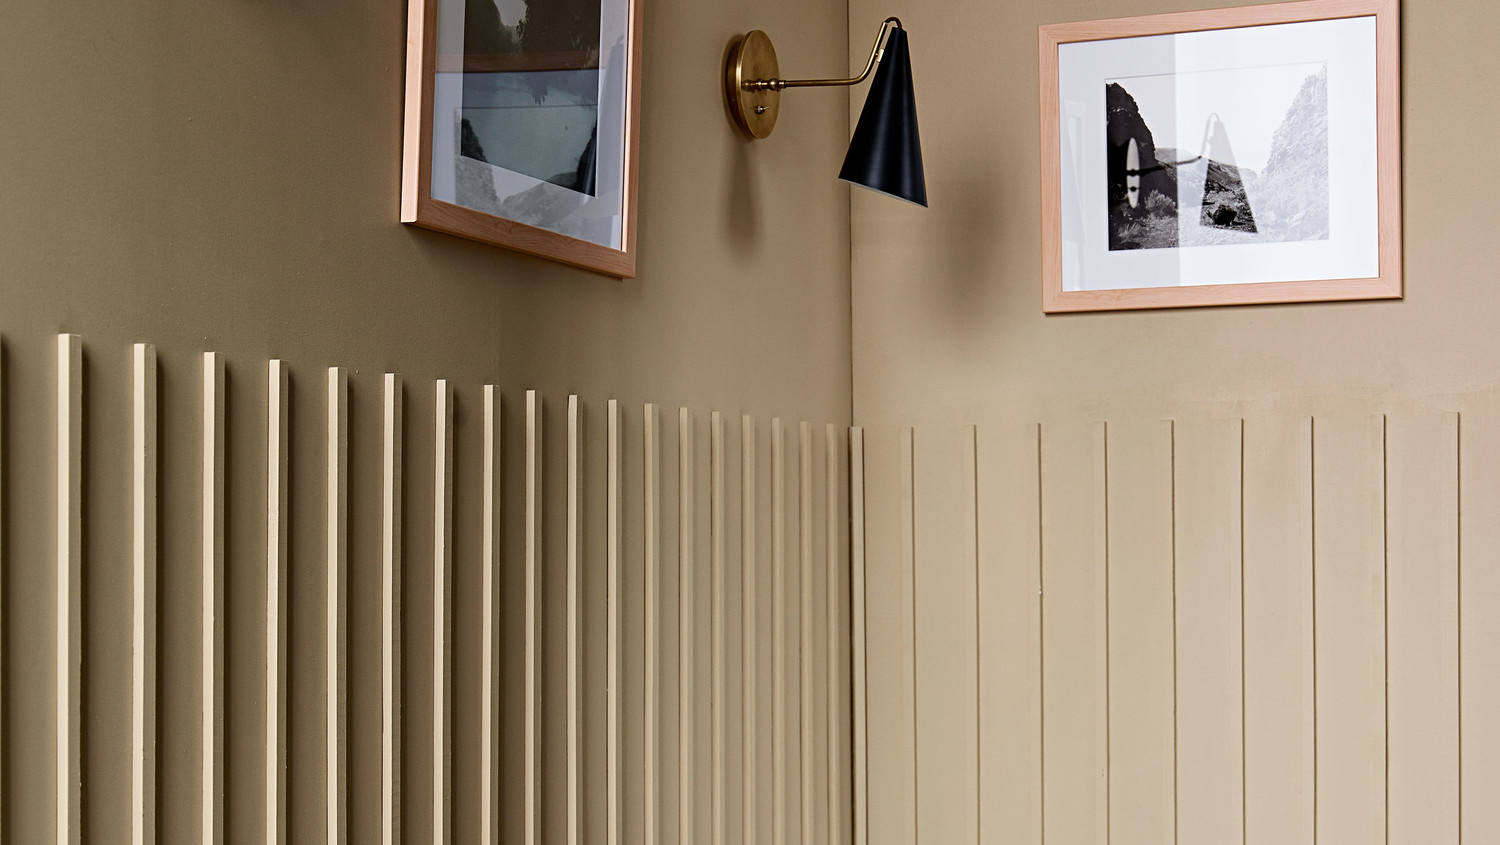 Find The Best Savings On Wagga Wagga Cottage/country Wall Throughout Polito Cottage/country Wall Mirrors (Image 9 of 30)